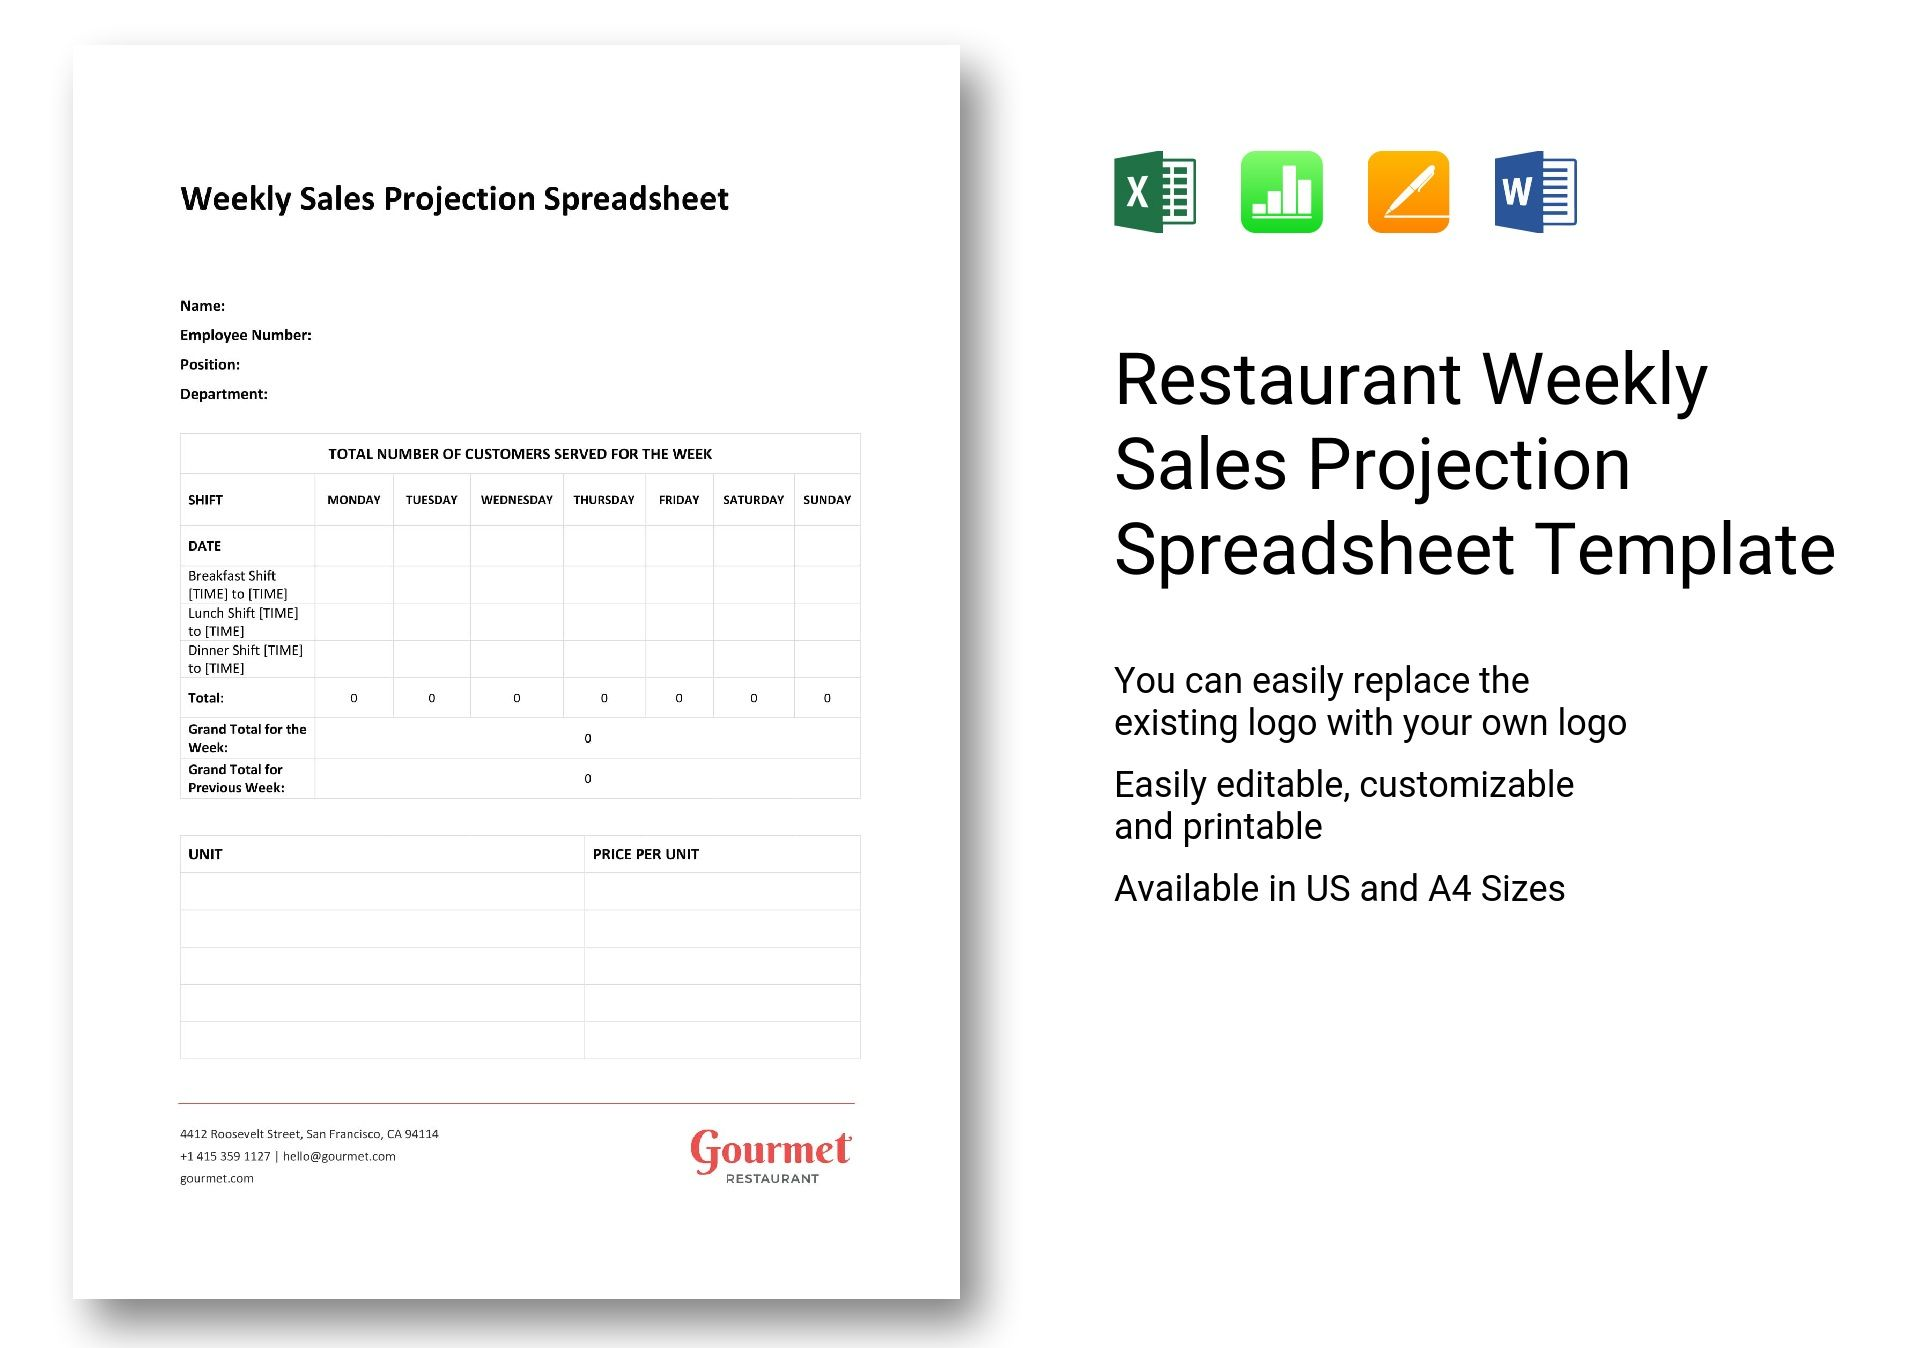 Restaurant Weekly Sales Projection Spreadsheet Template In